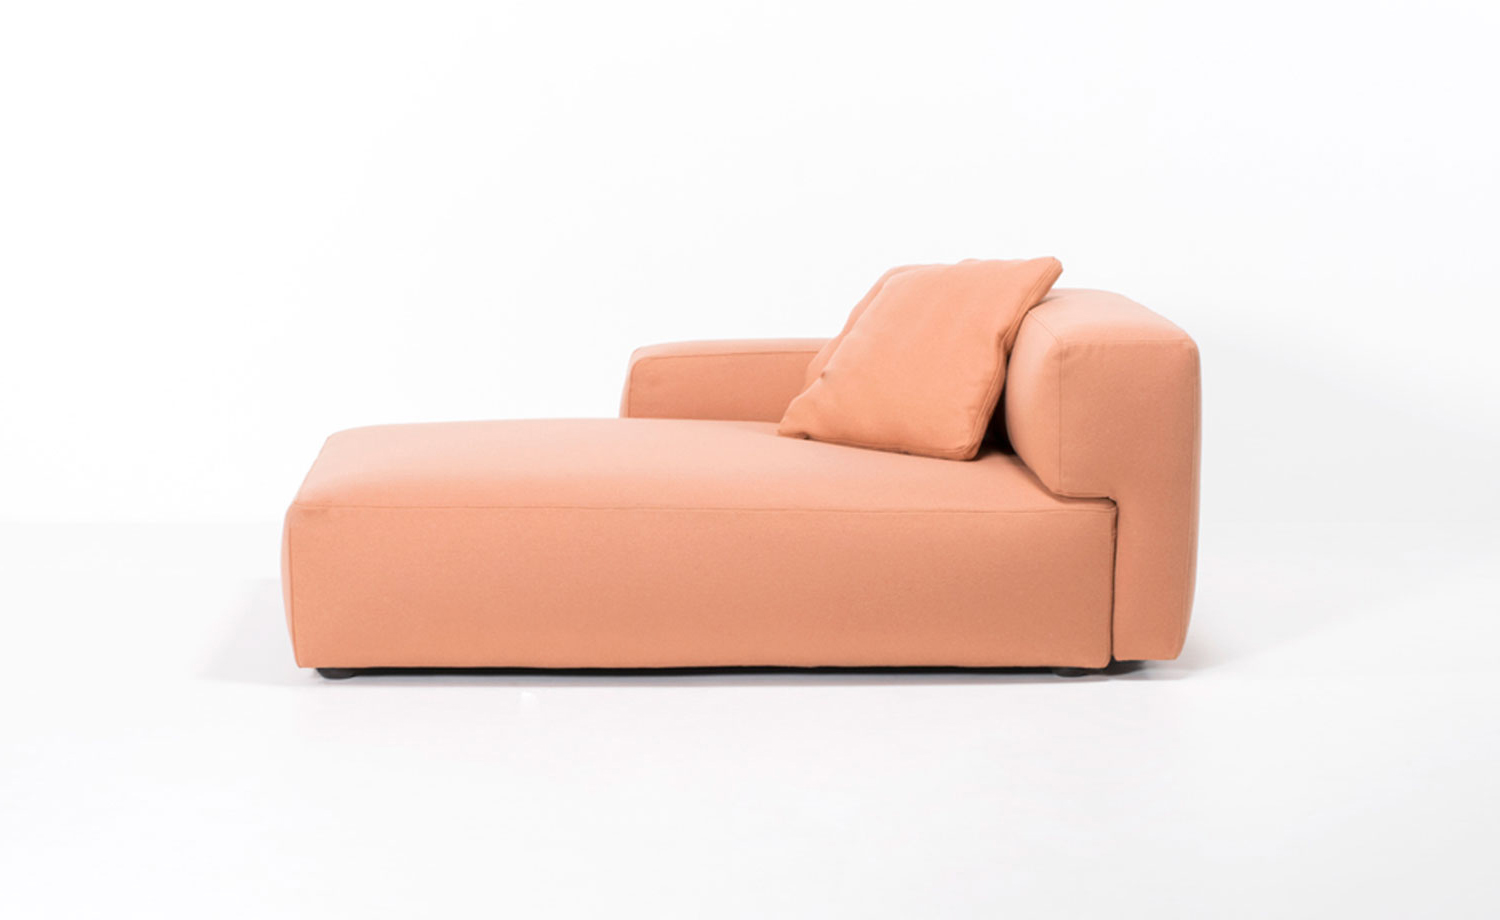 EXPO chaise longue LAF image #7